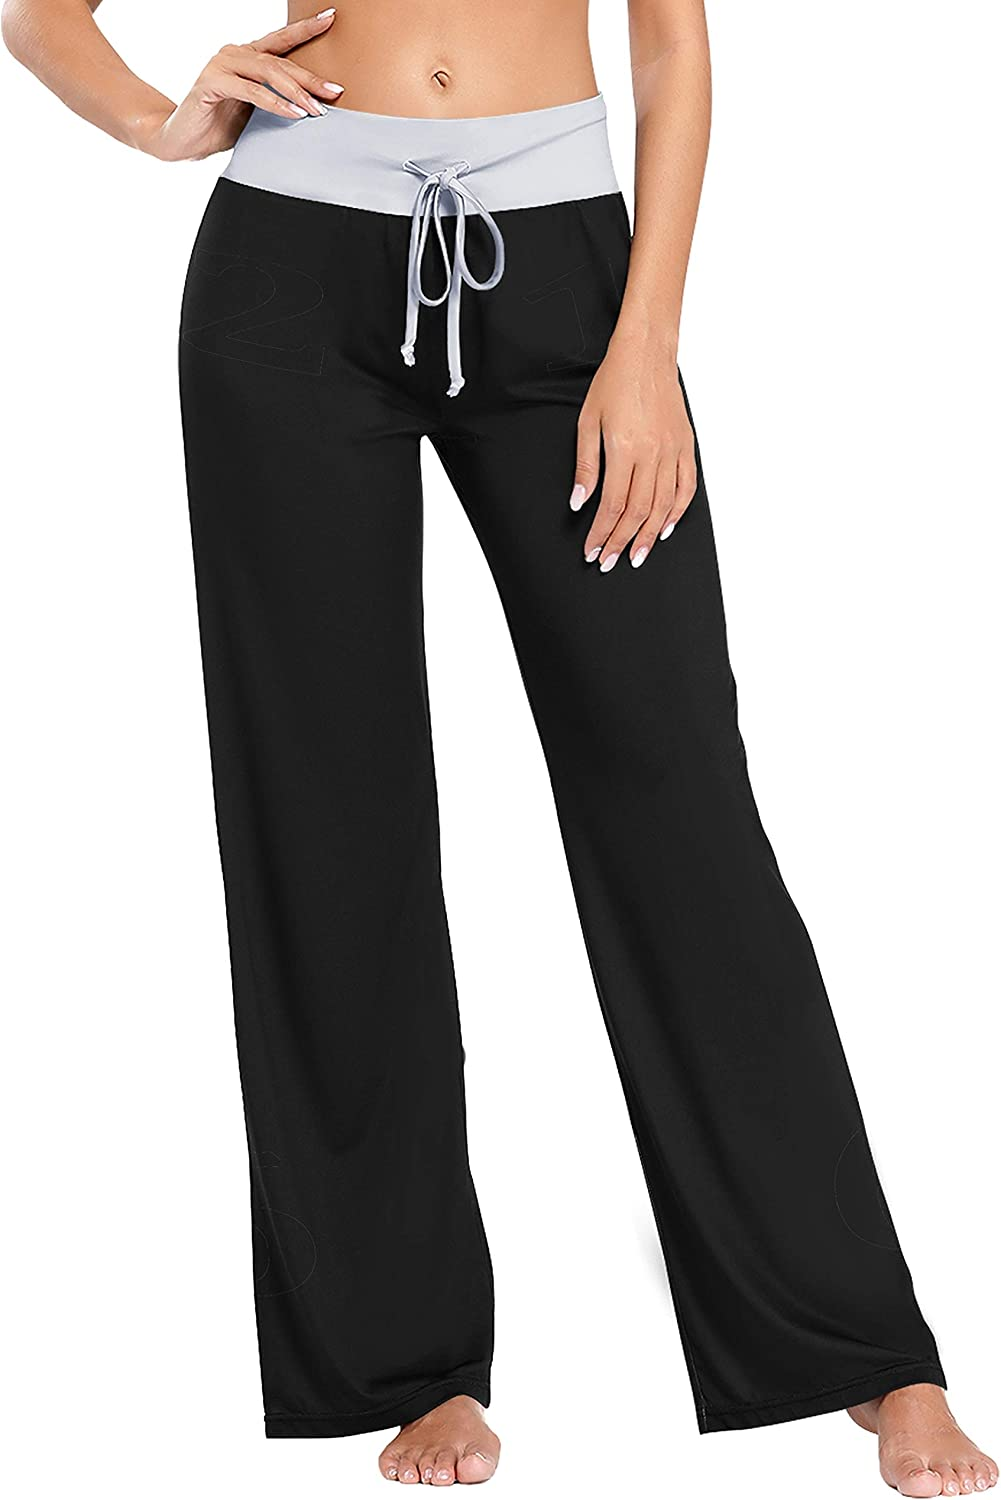 AQQA Holiday Pajama Pants for Women OFFicial store Clock Bottoms Pajam Animer and price revision Out Face